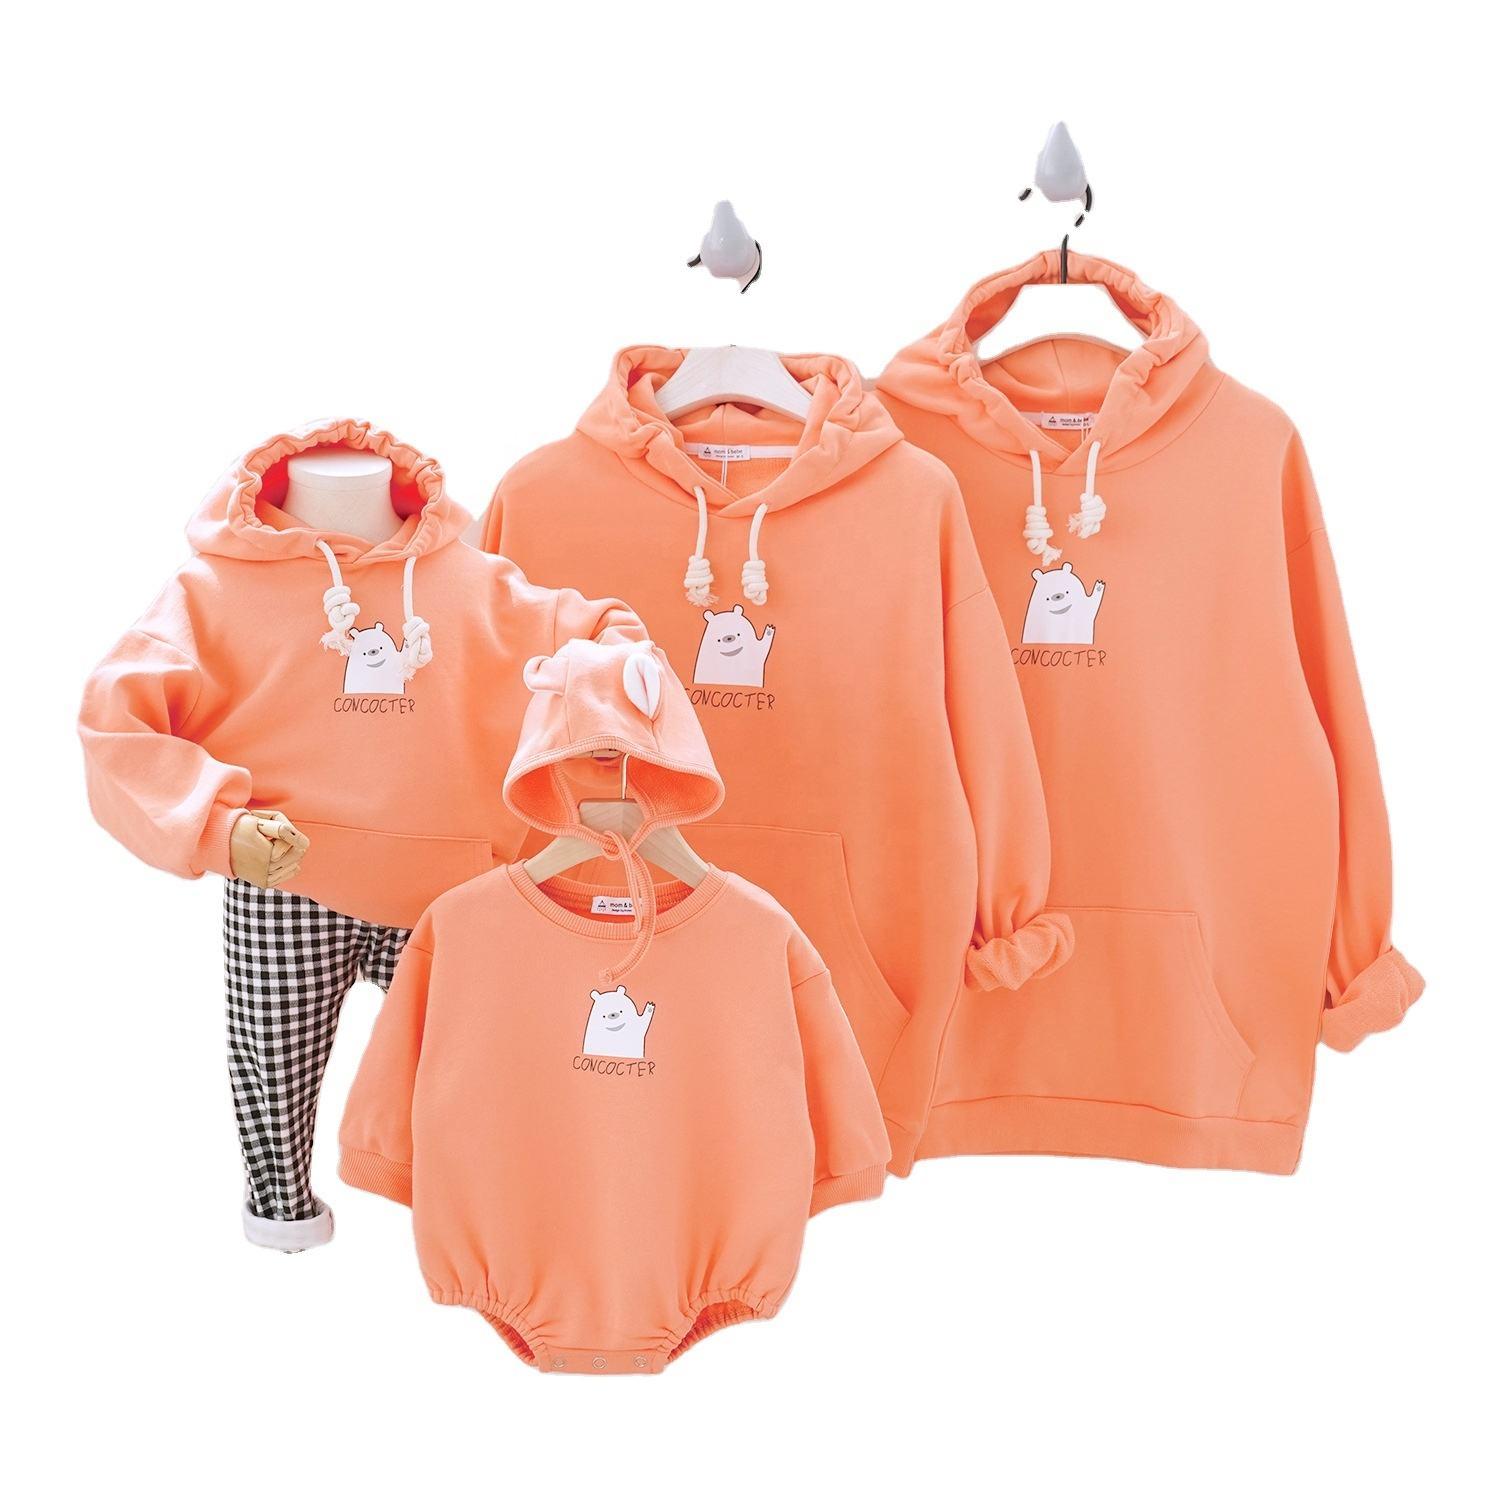 Sweat à capuche assortis pour parents et enfants, <span class=keywords><strong>tenues</strong></span> de famille, nouvelle collection 2018